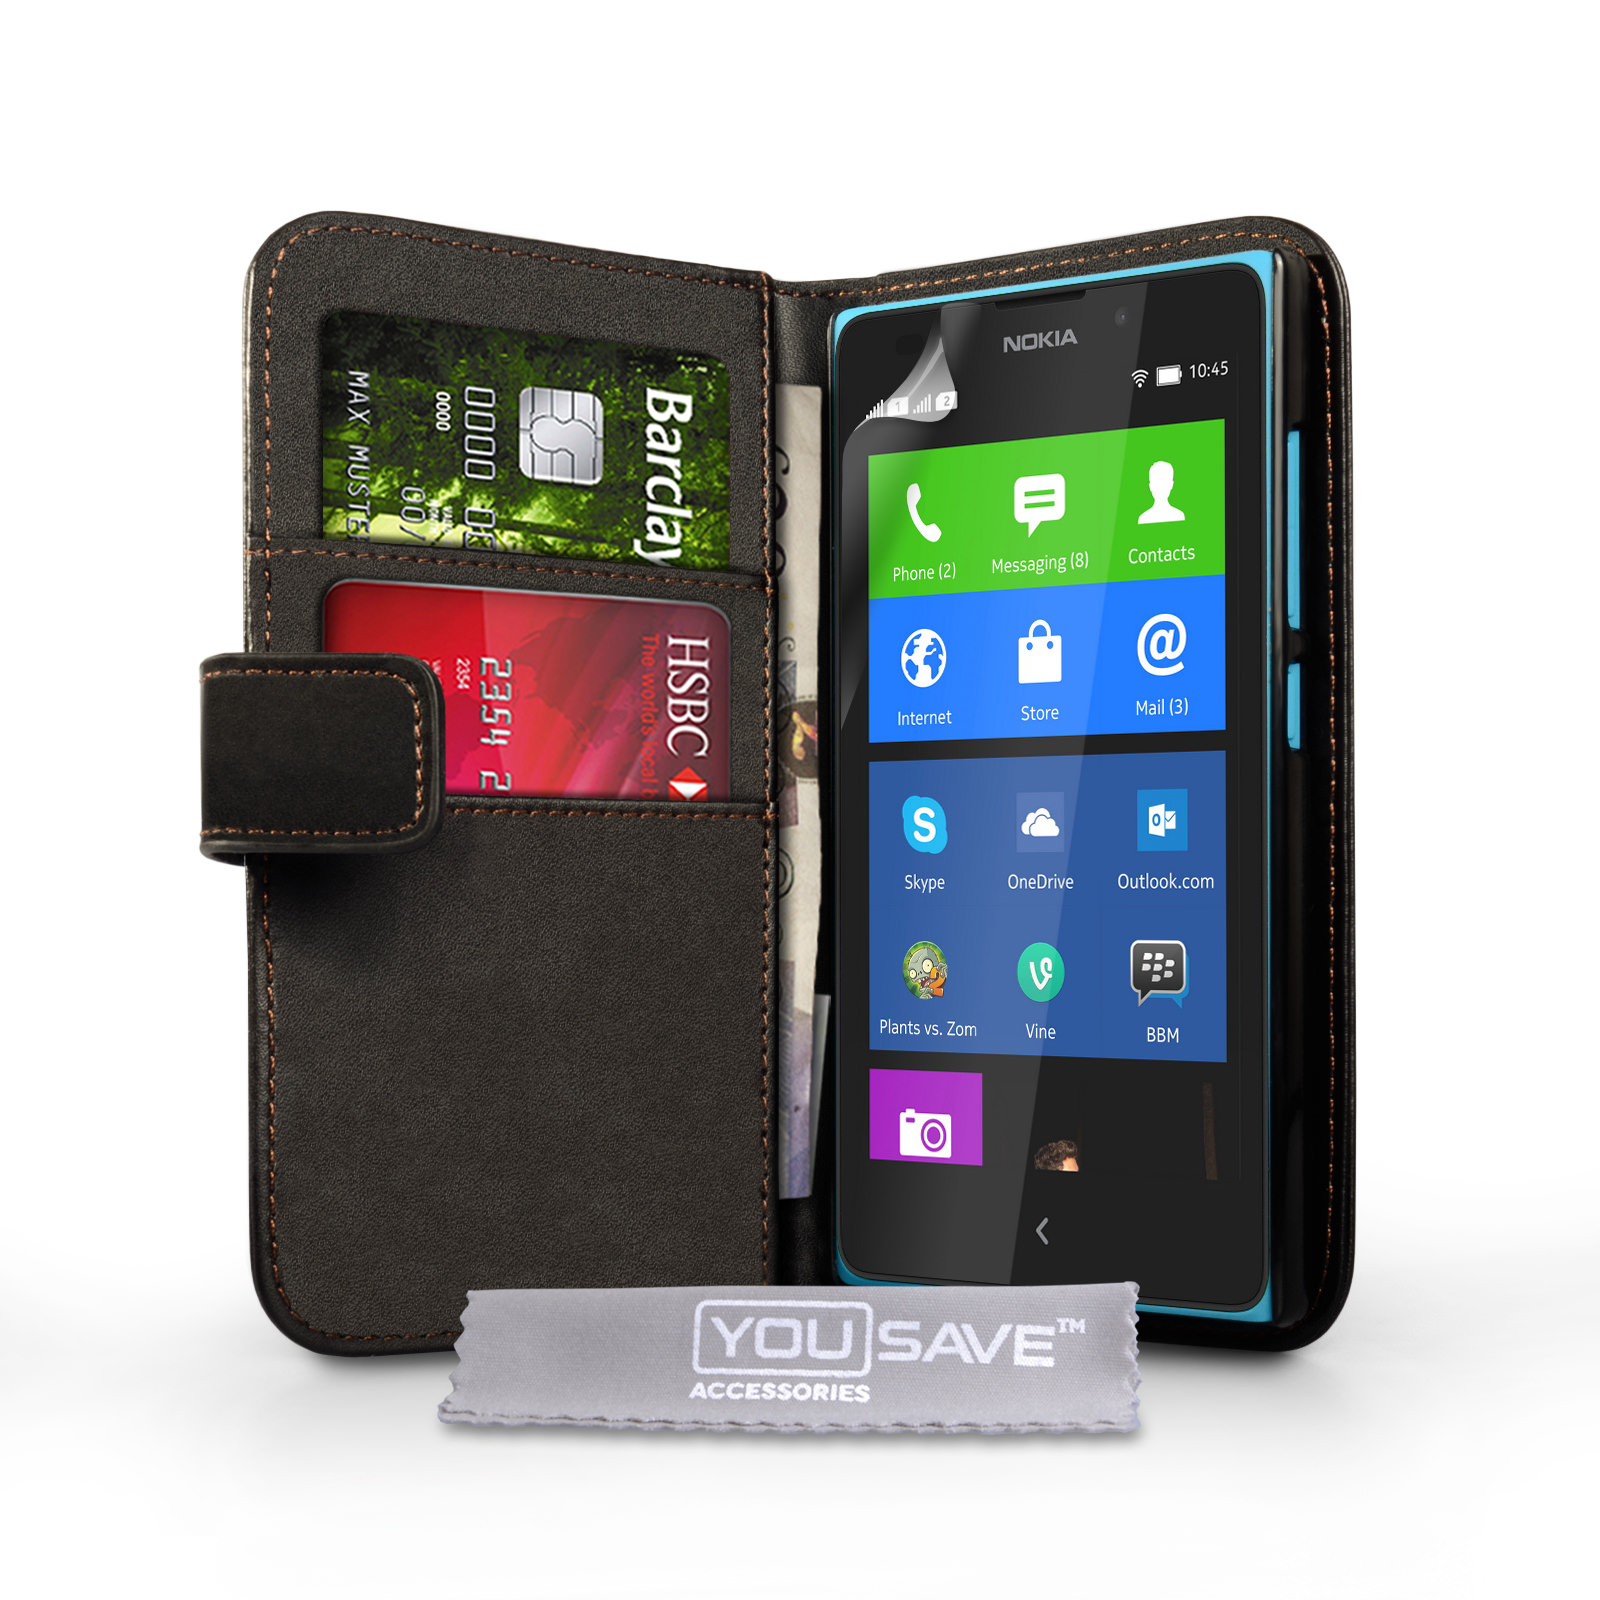 YouSave Accessories Nokia XL Leather-Effect Wallet Case - Black